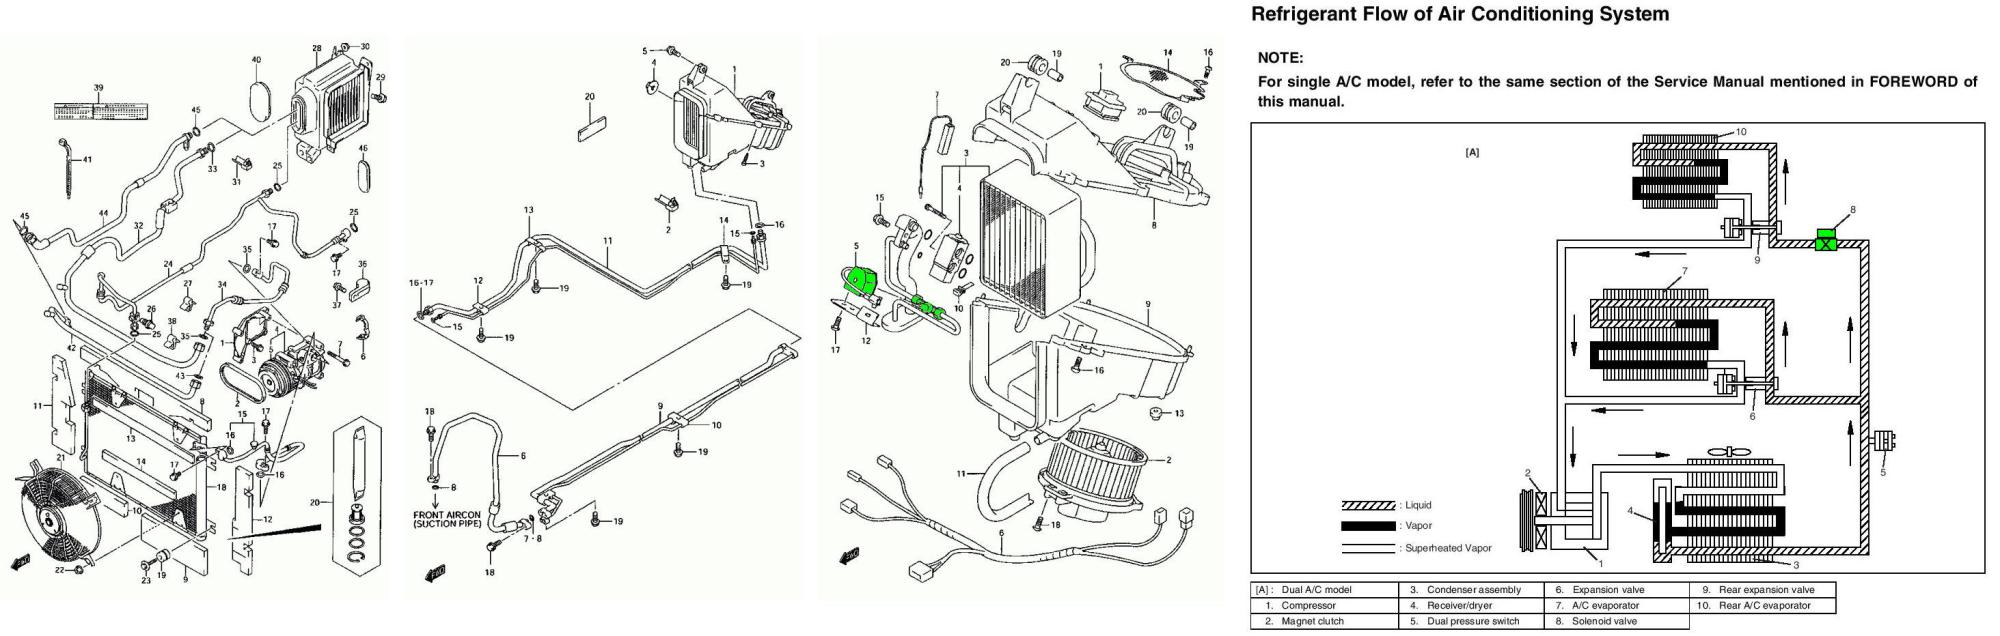 hight resolution of 2004 suzuki verona fuse box 2000 suzuki grand vitara fuse 2007 suzuki xl7 fuse box diagram